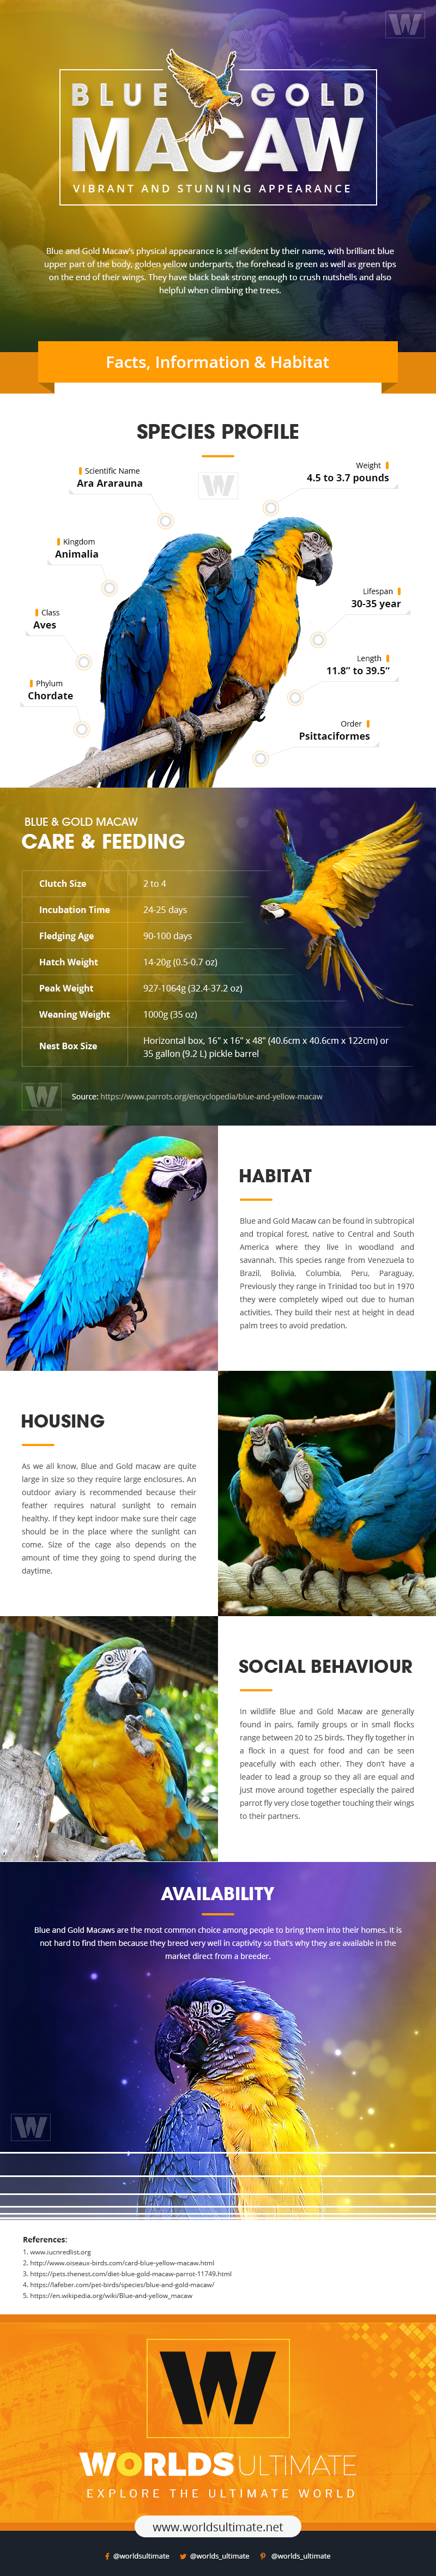 Blue and Gold Macaw: Vibrant and Stunning Appearance [Infographic]